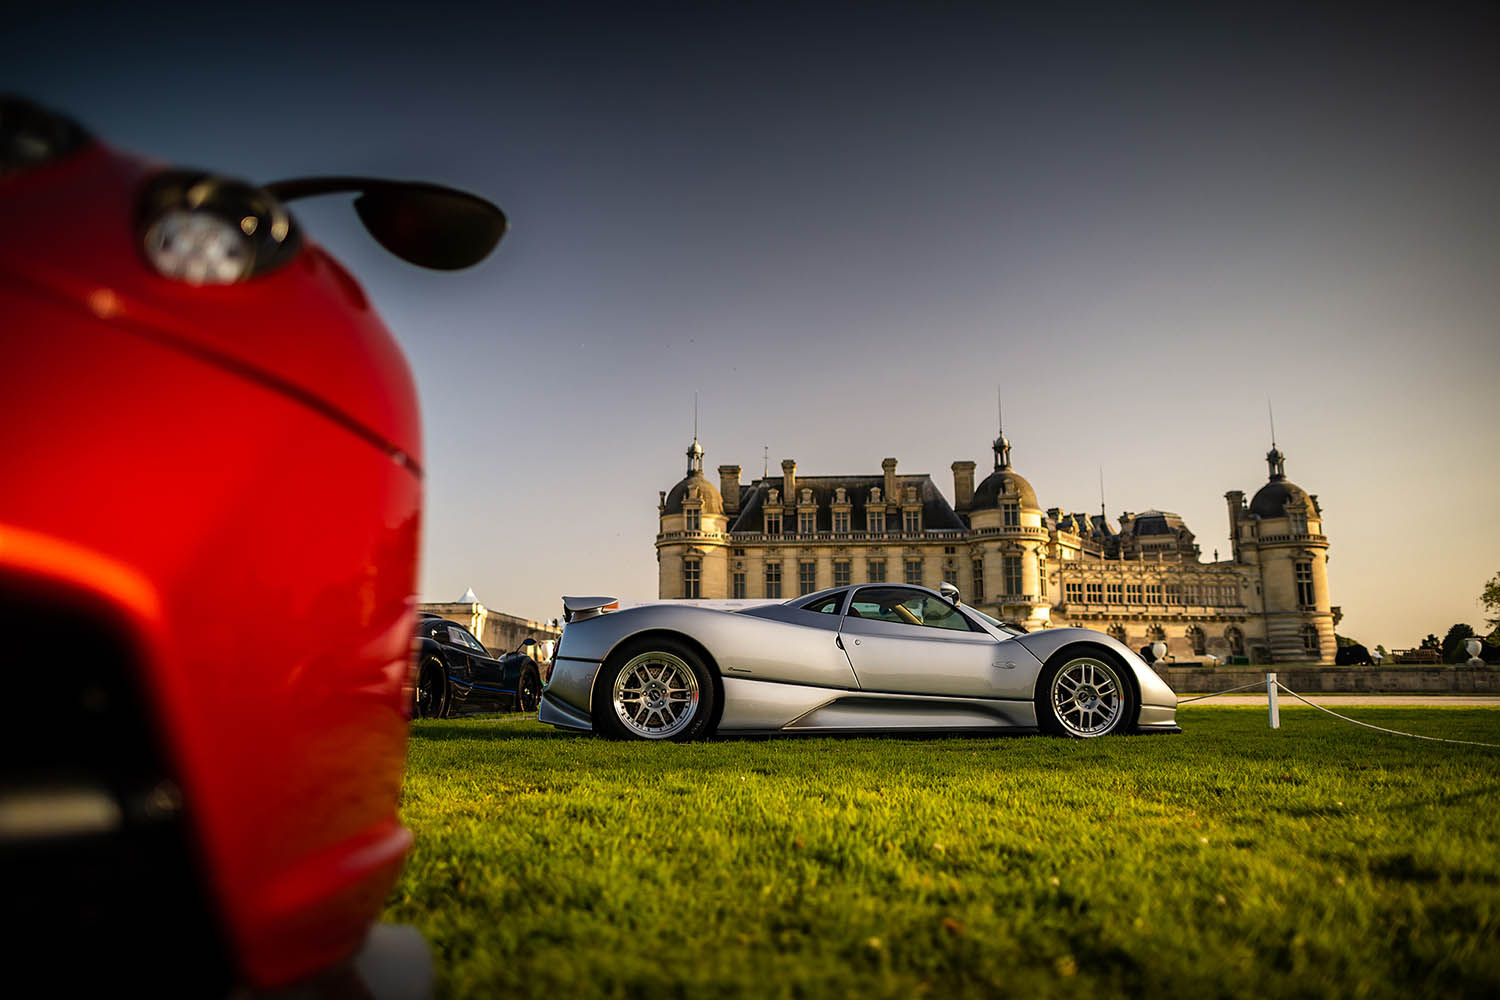 2019_PeterAuto_Chantilly_AlexisGoure_1759.jpg